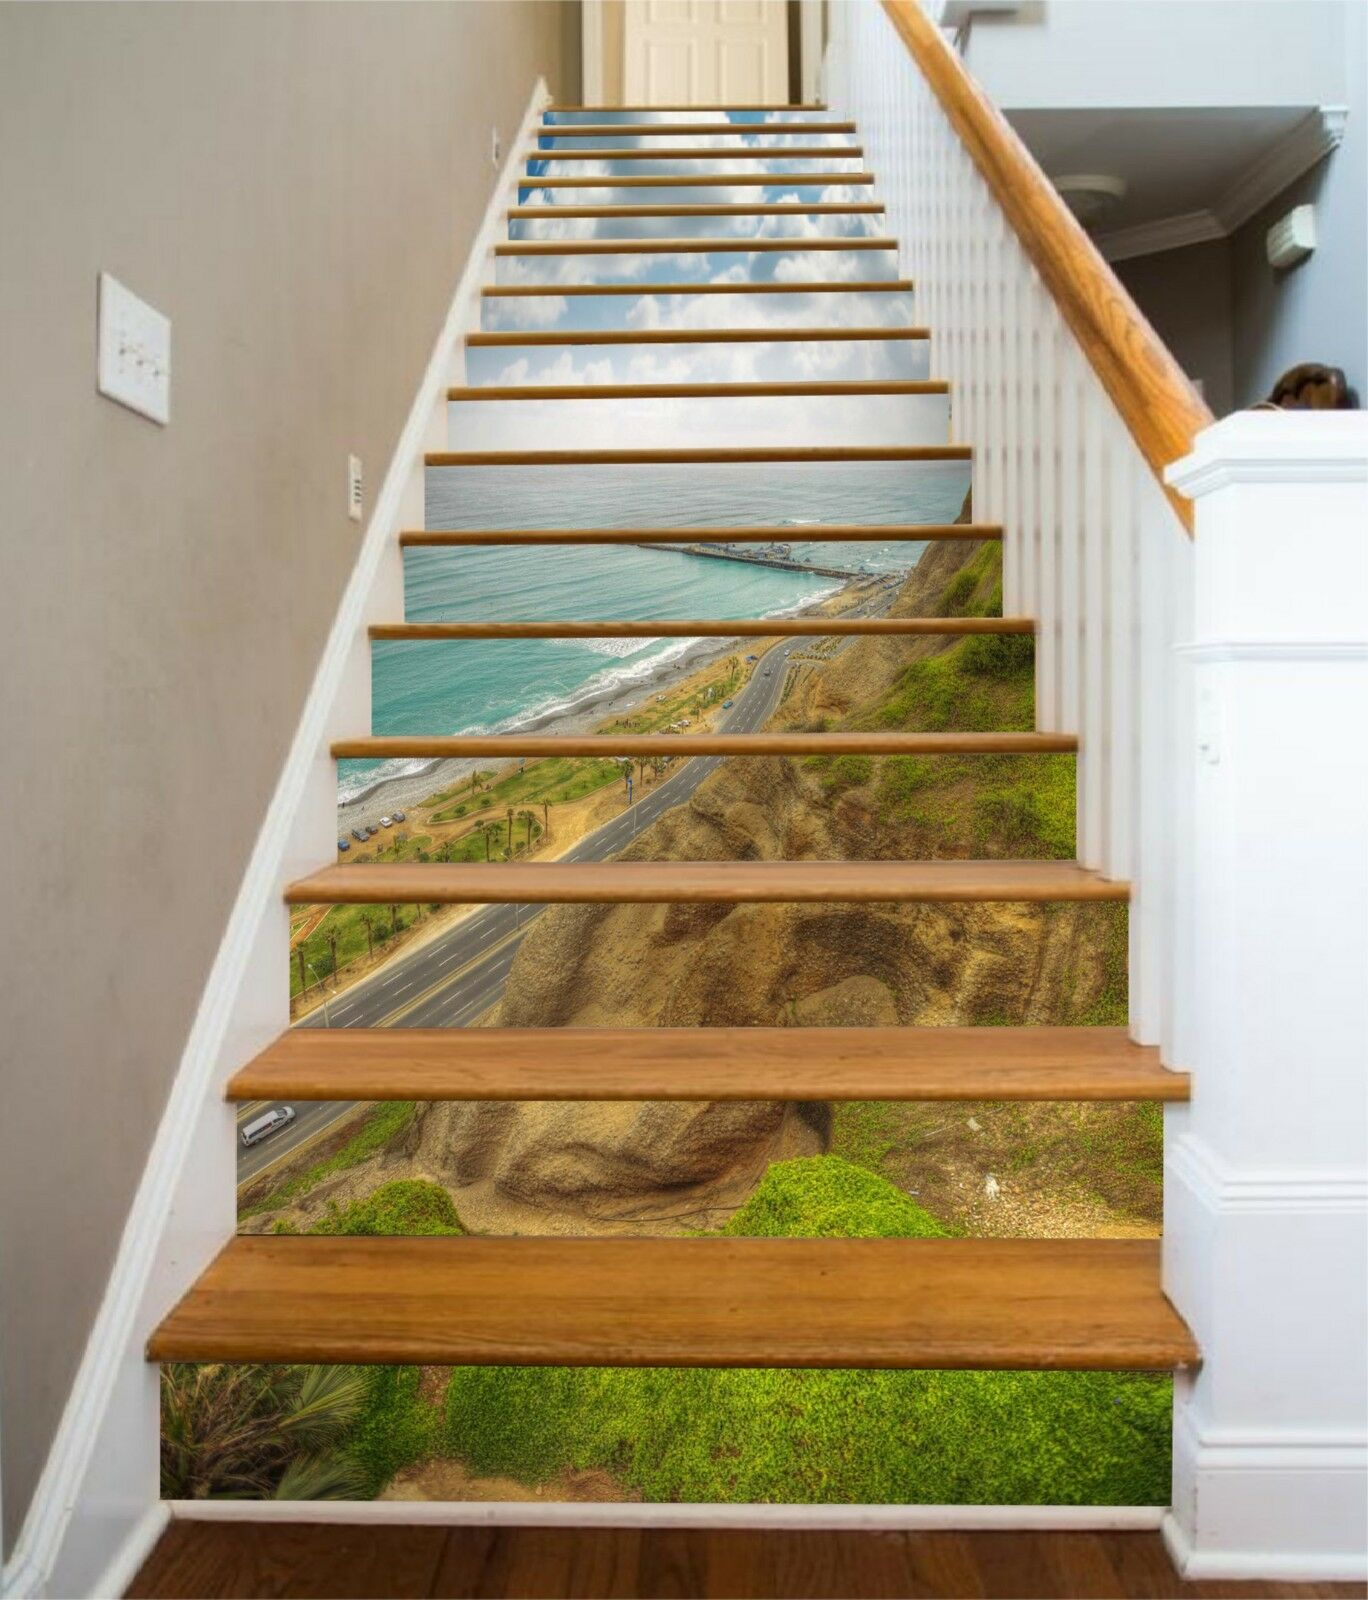 3D Lawn Mountains Stair Risers Decoration Photo Mural Vinyl Decal Wallpaper UK